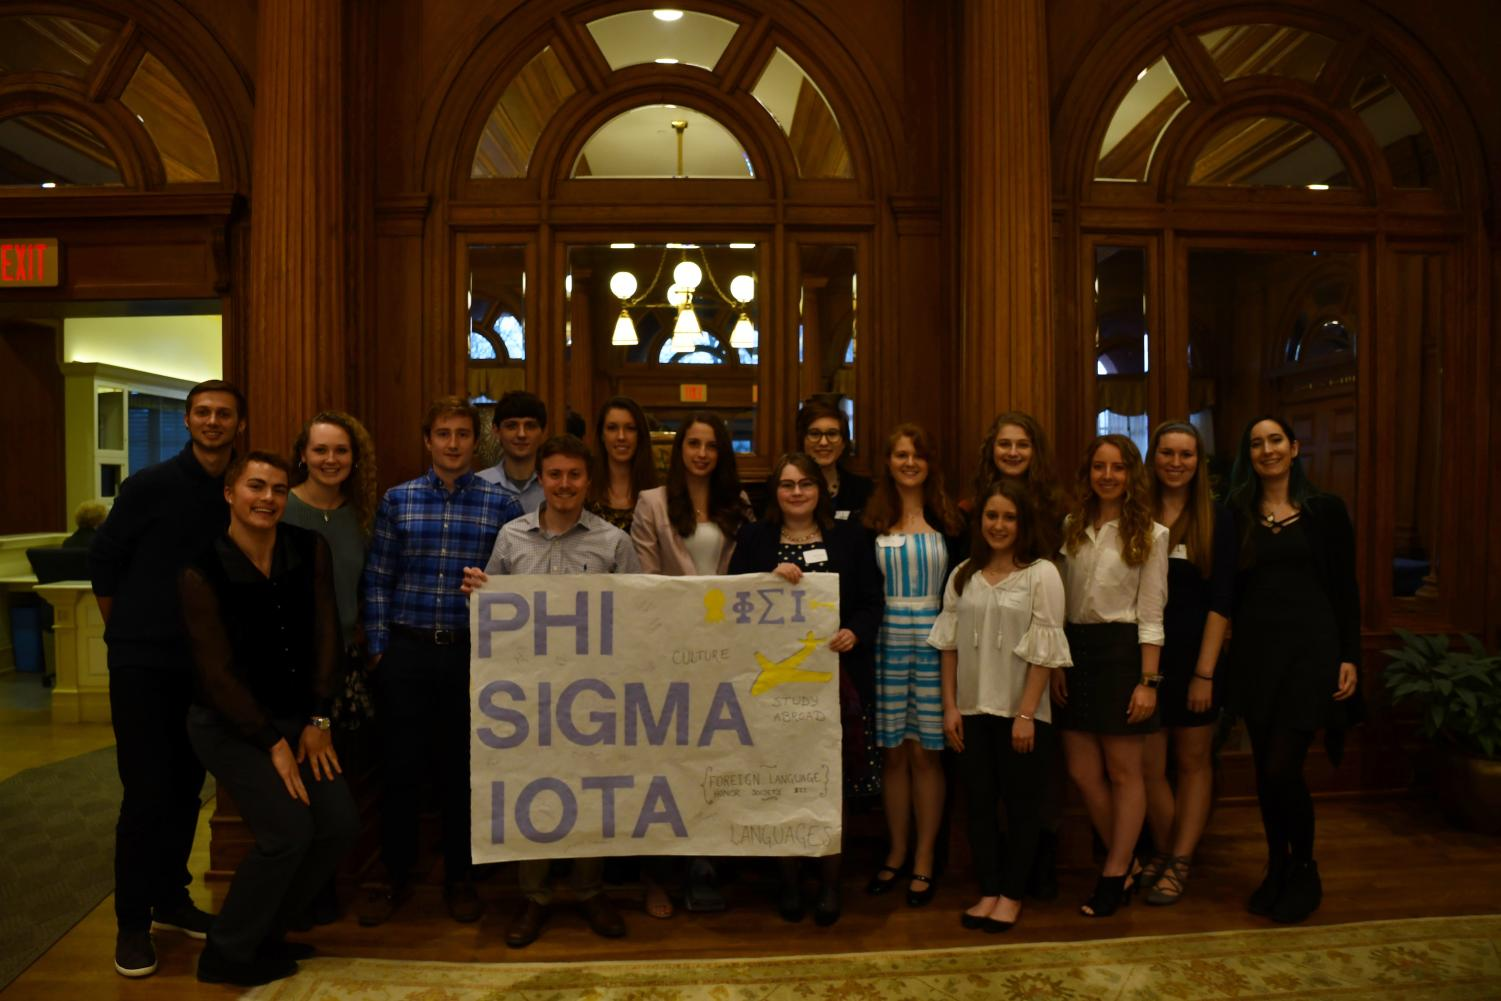 New members of the Phi Sigma Iota foreign language honor society pose with a banner after being inducted on Tuesday, April 10, 2018 in the Tippie Alumni Center.